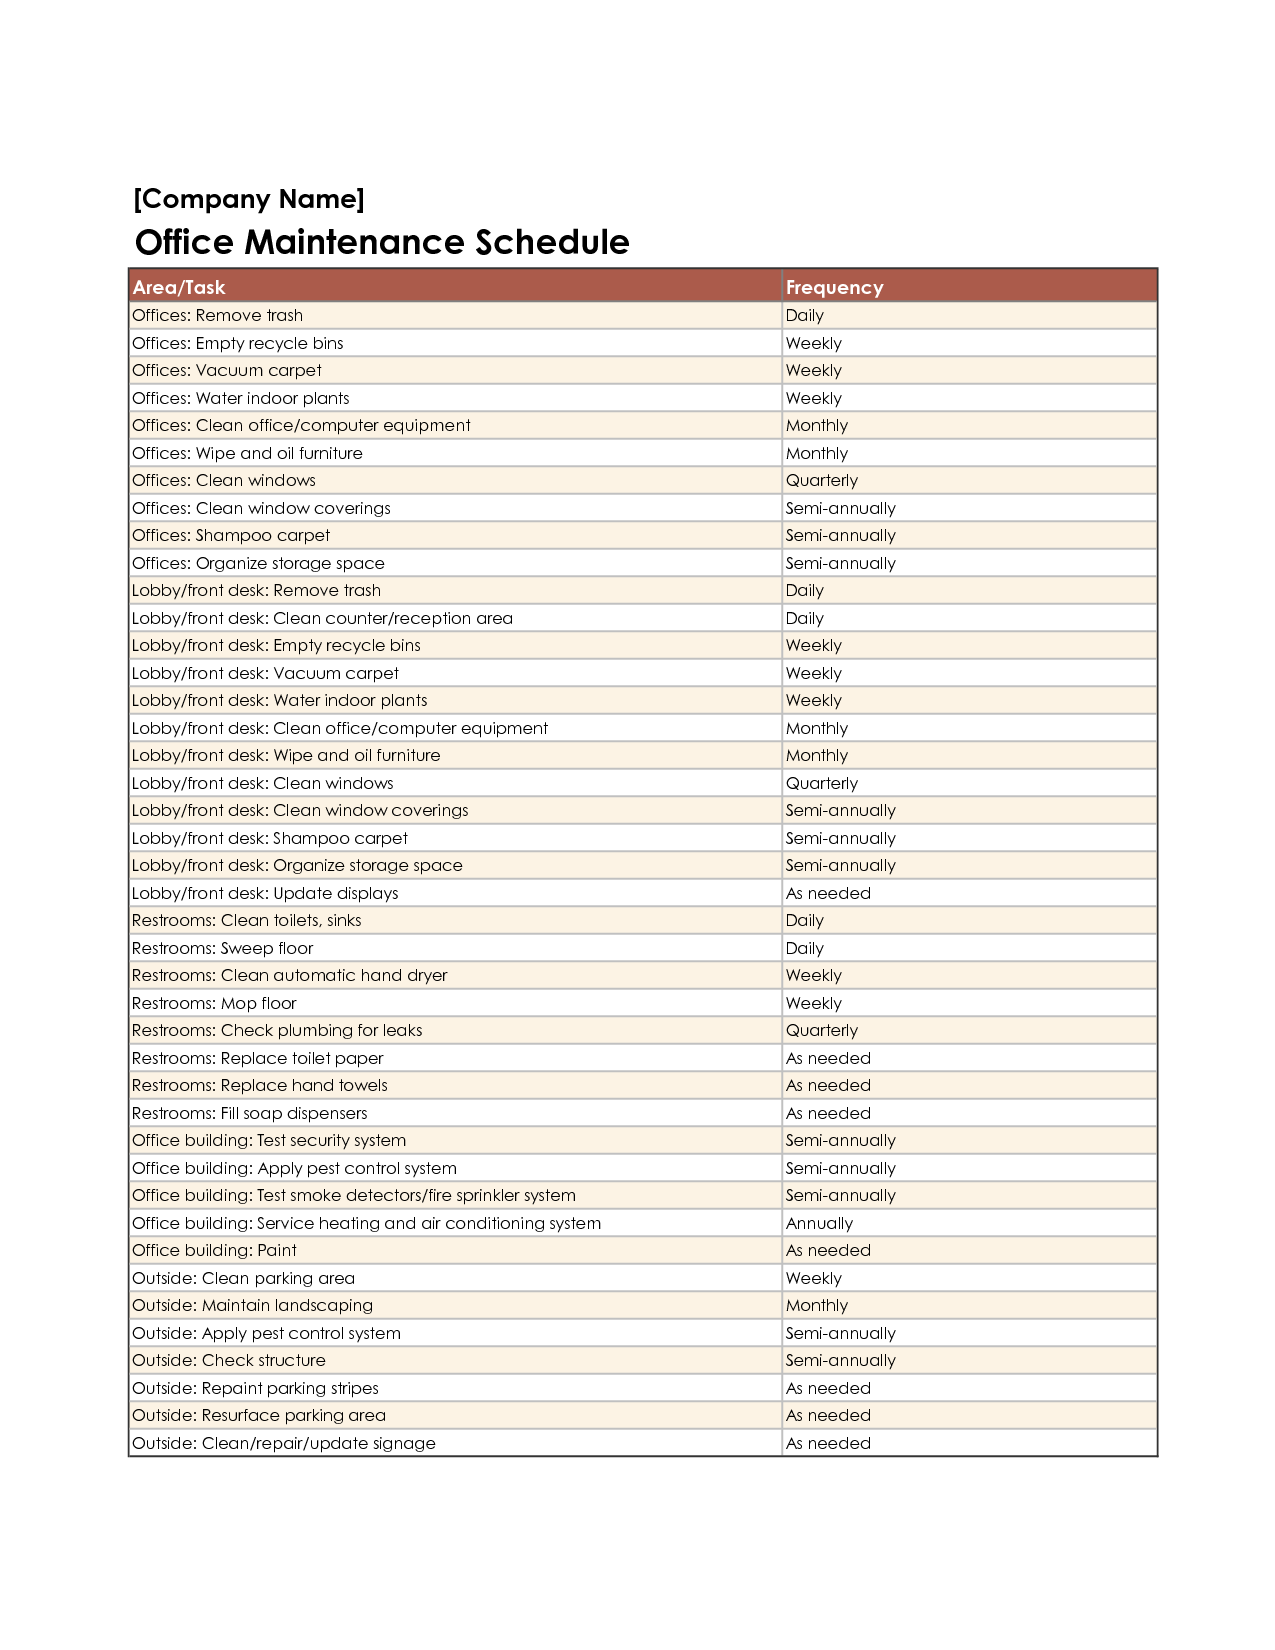 Equipment Maintenance Schedule Template Excel http://www.amazon ...